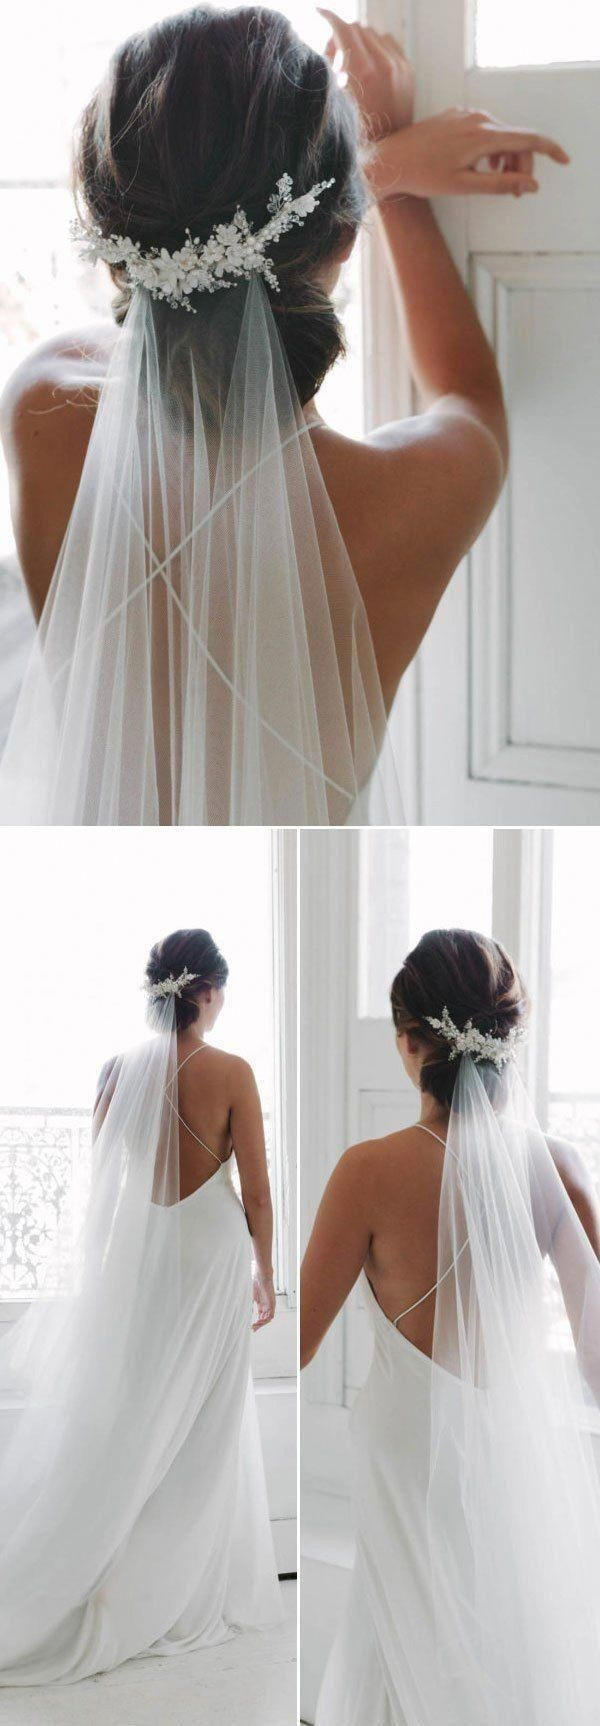 Pin By Sabrina Schumacher On Dress Hochzeit In 2020 Bridal Hair Updo Wedding Hairstyles Updo Trendy Wedding Hairstyles